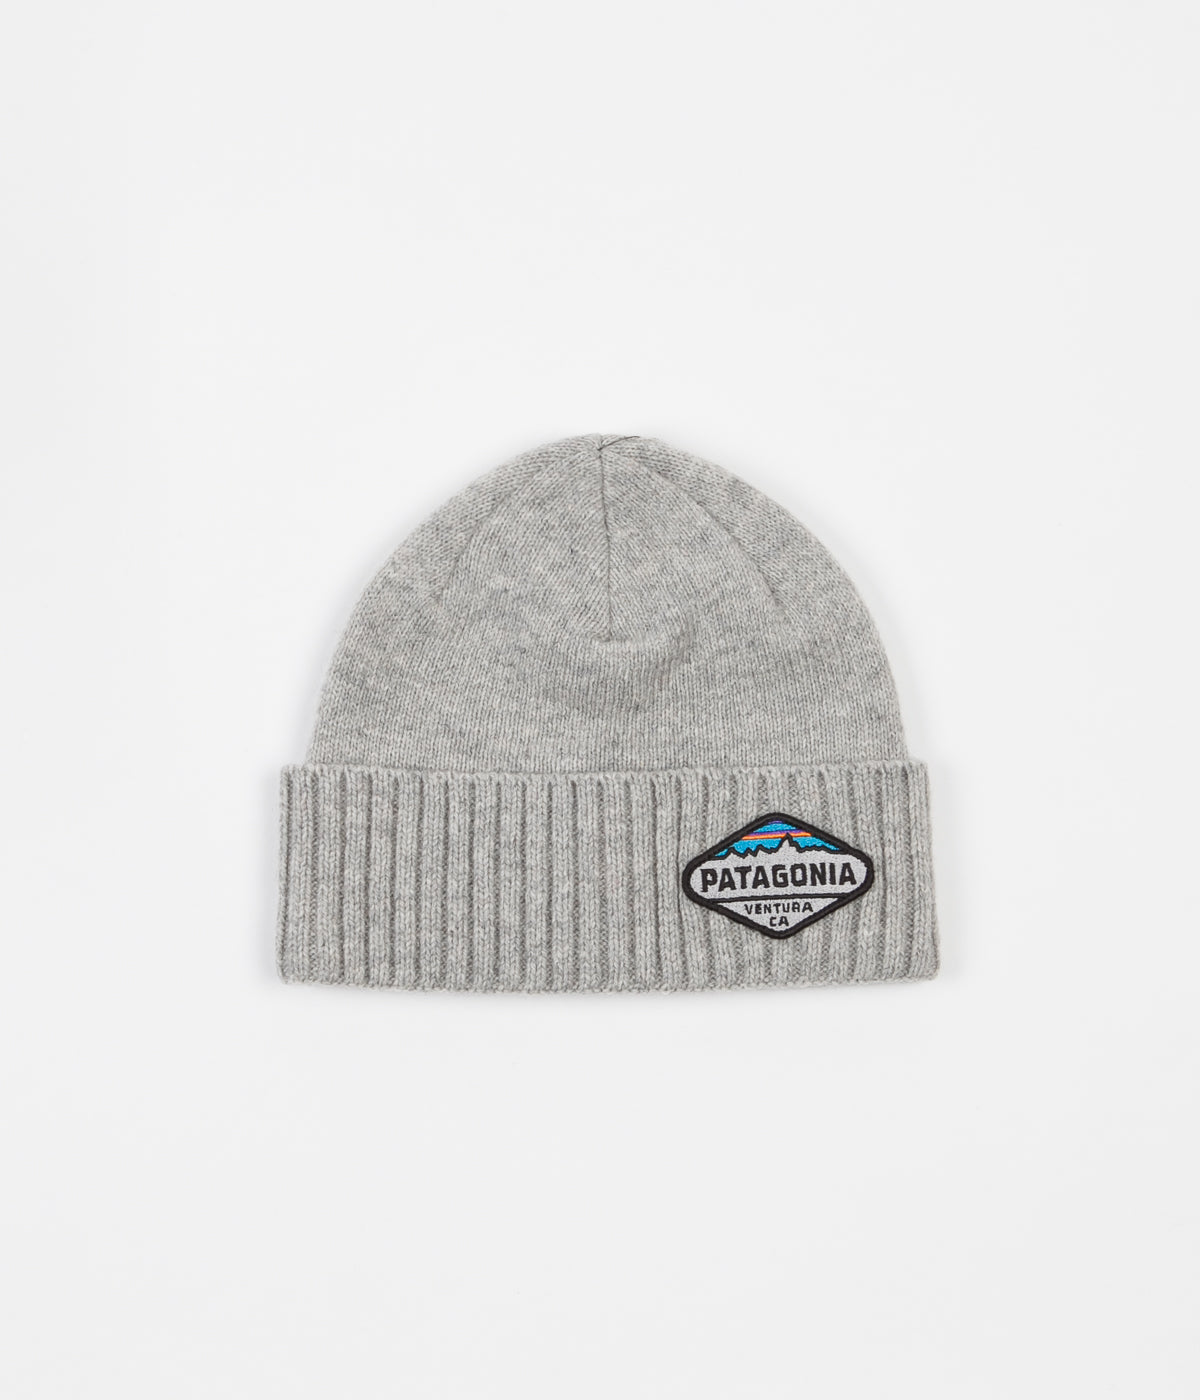 Patagonia Brodeo Beanie - Fitz Roy Crest / Drifter Grey